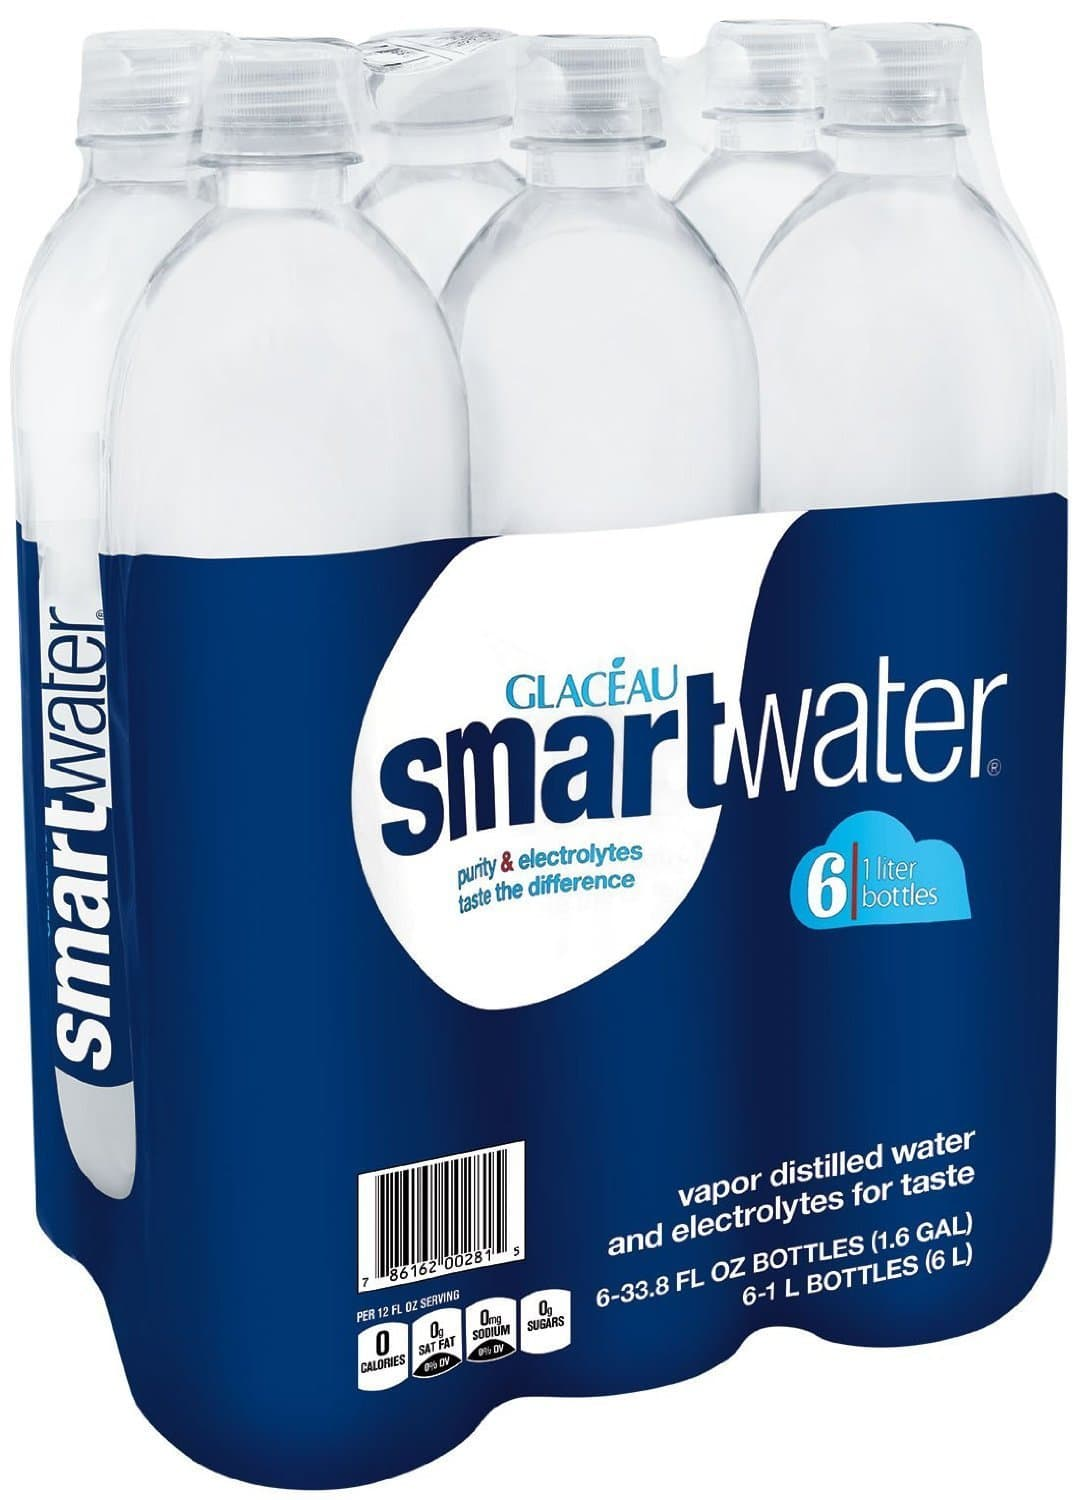 $5.40 or lower, smartwater, 6 ct, 1L Bottle Amazon subscribe & save s&s +25% off coupon